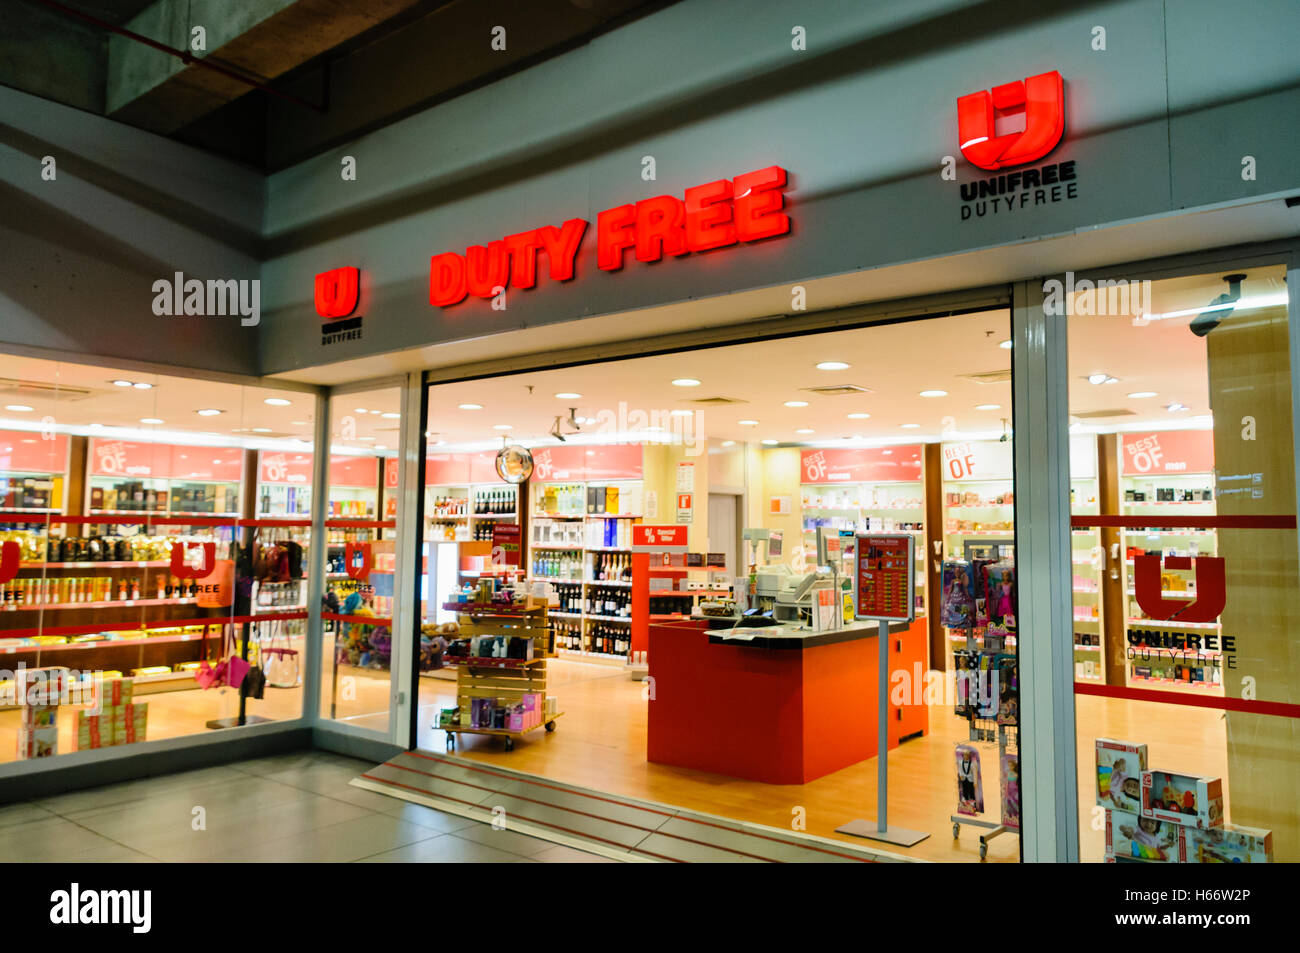 Duty Free shop at an airport - Stock Image